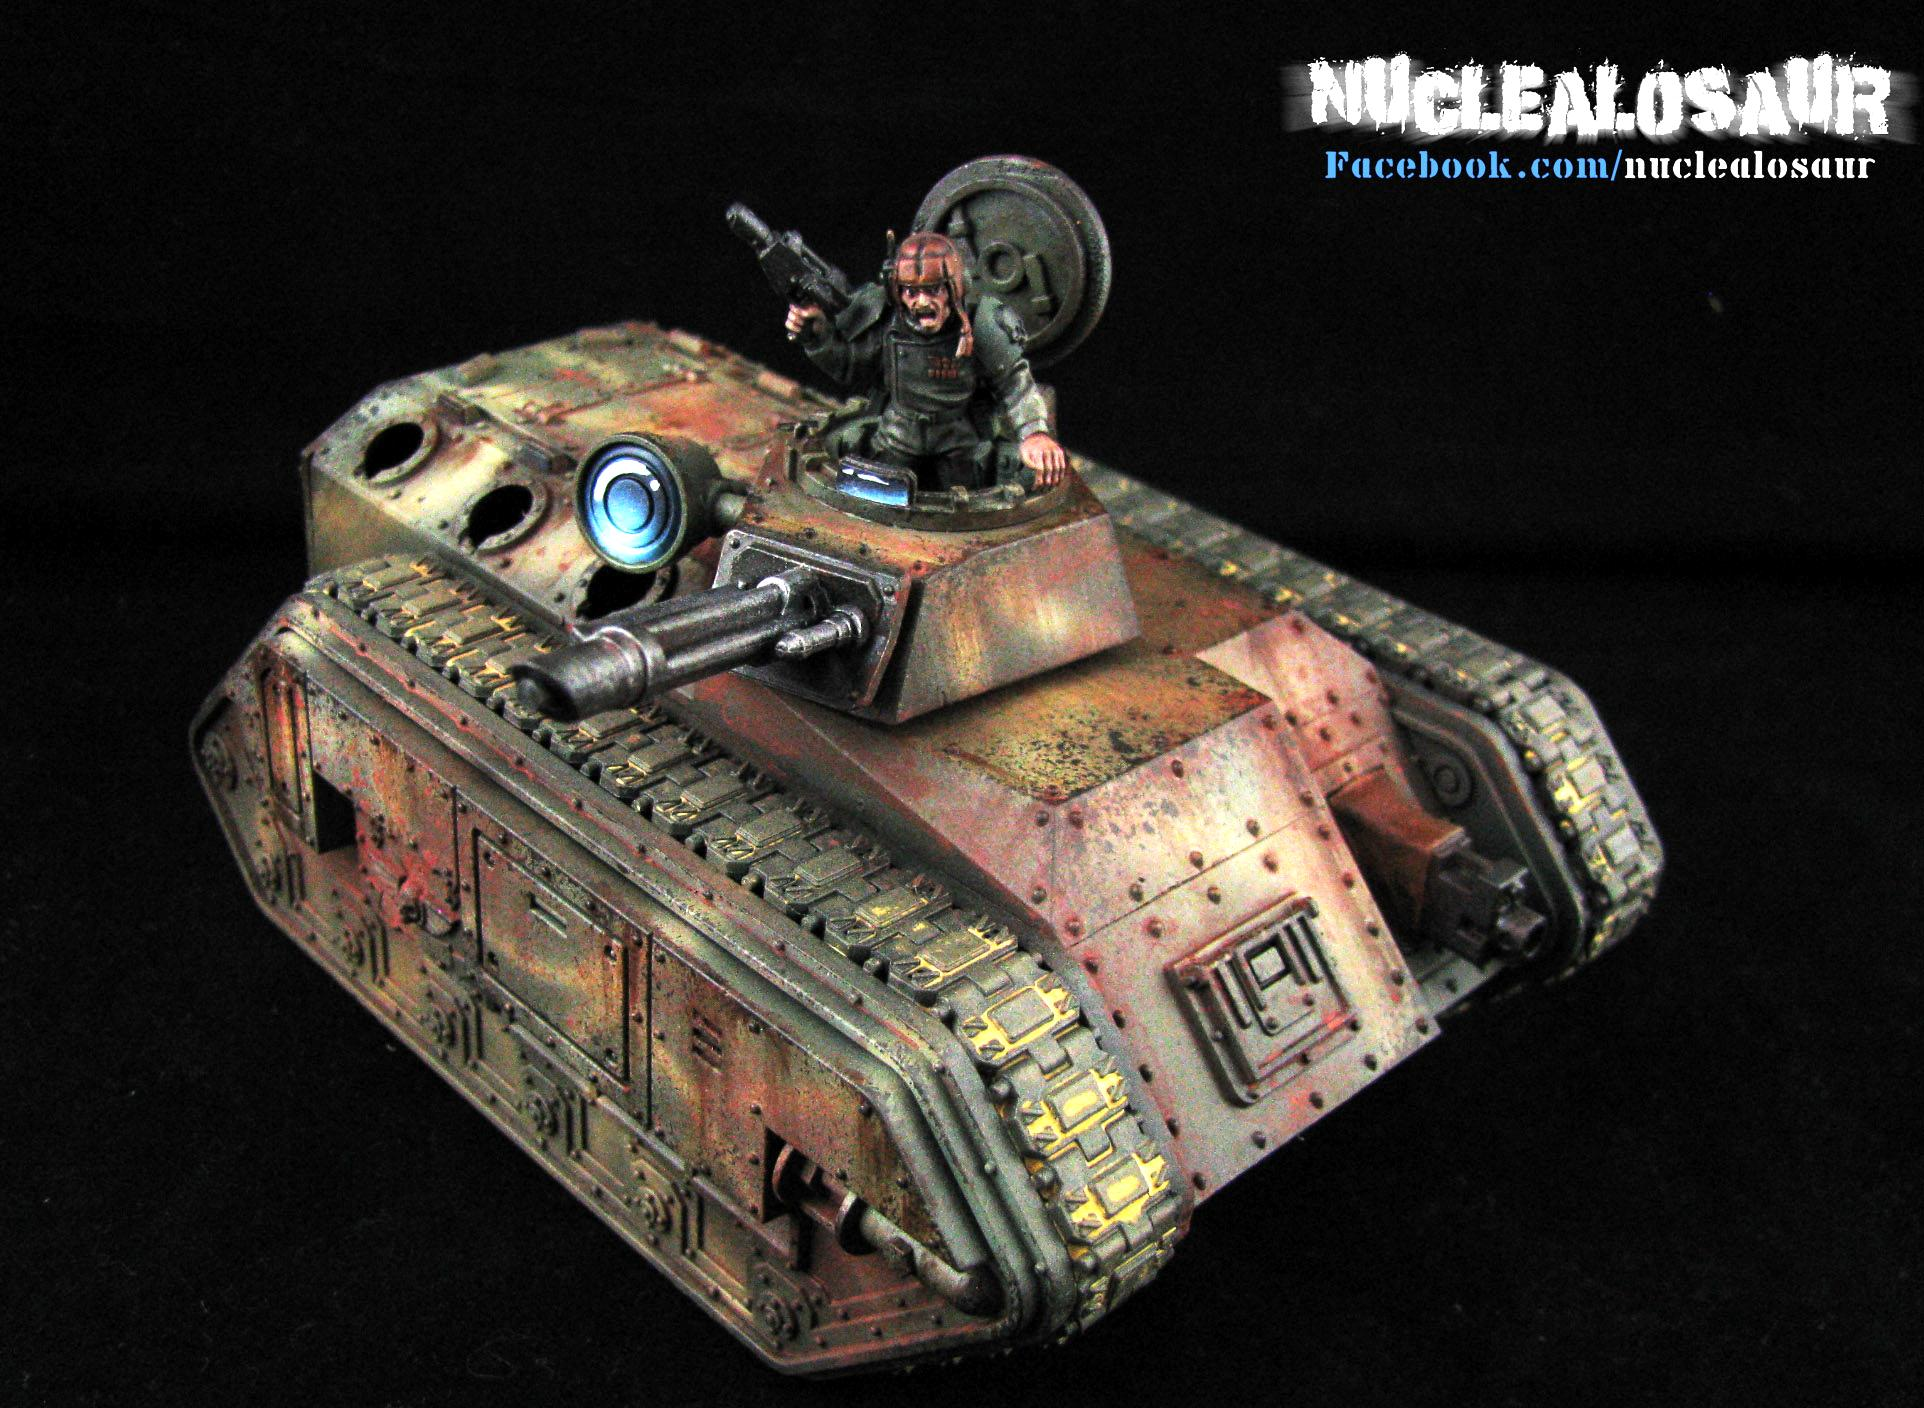 Camouflage, Chimera, Imperial Guard, Tank, Transporter, Warhammer 40,000